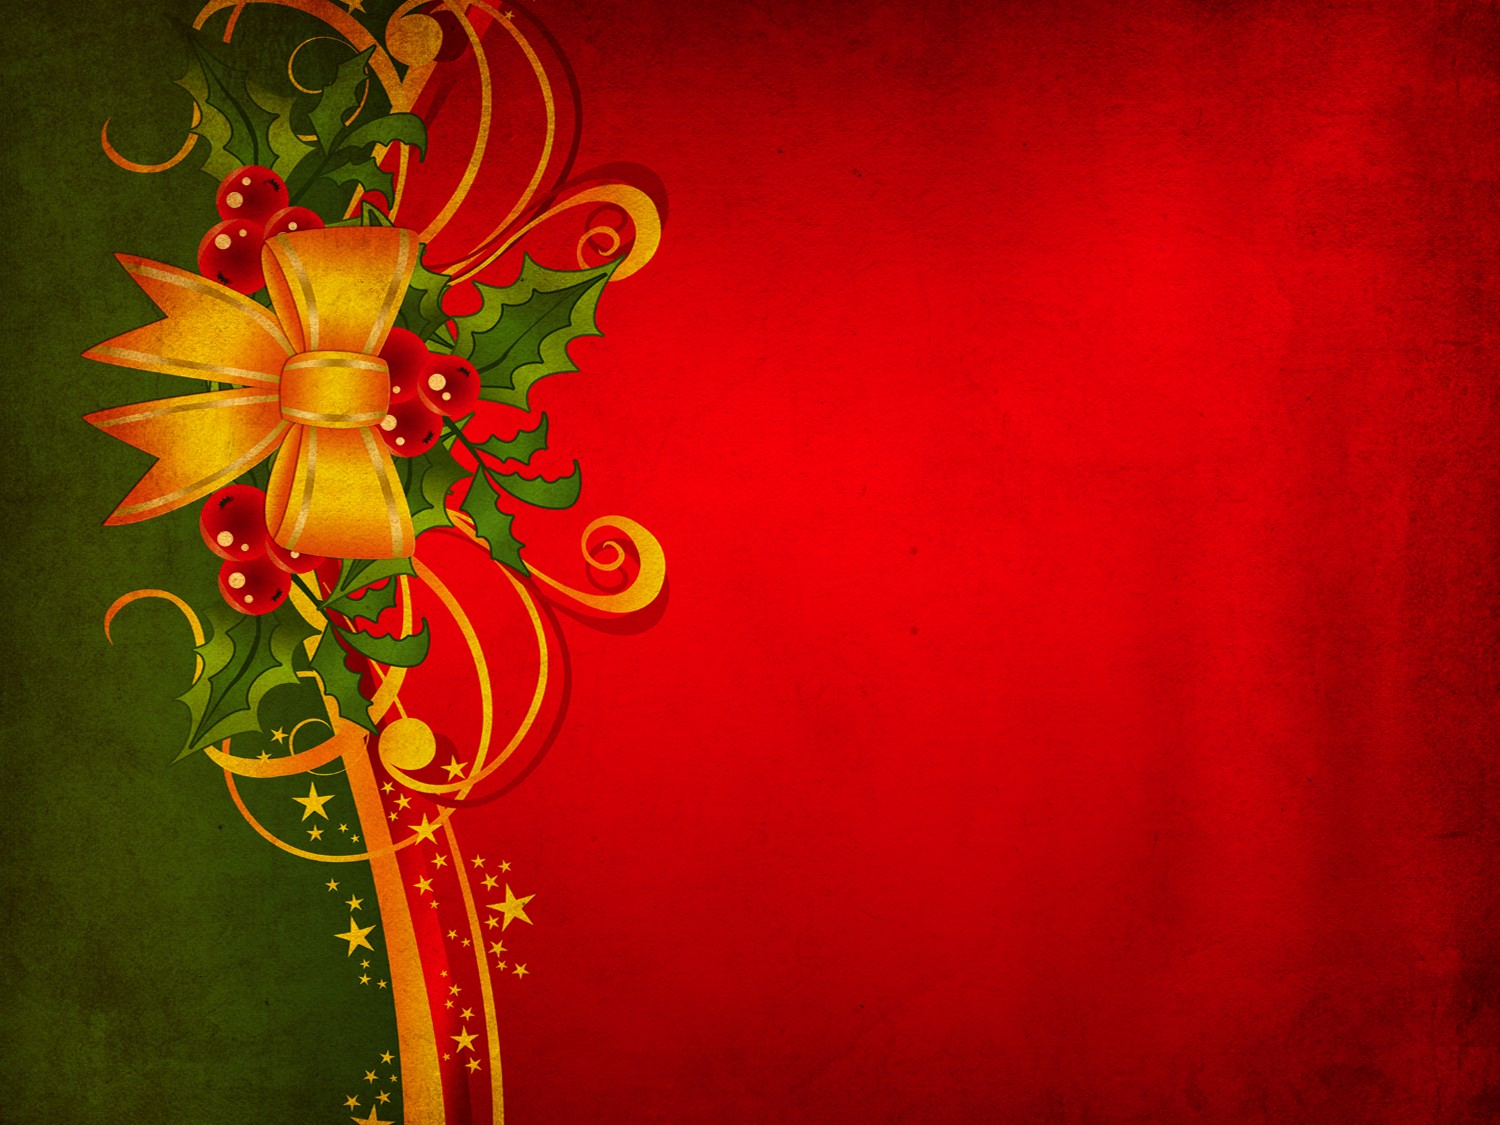 christmas worship background - photo #36